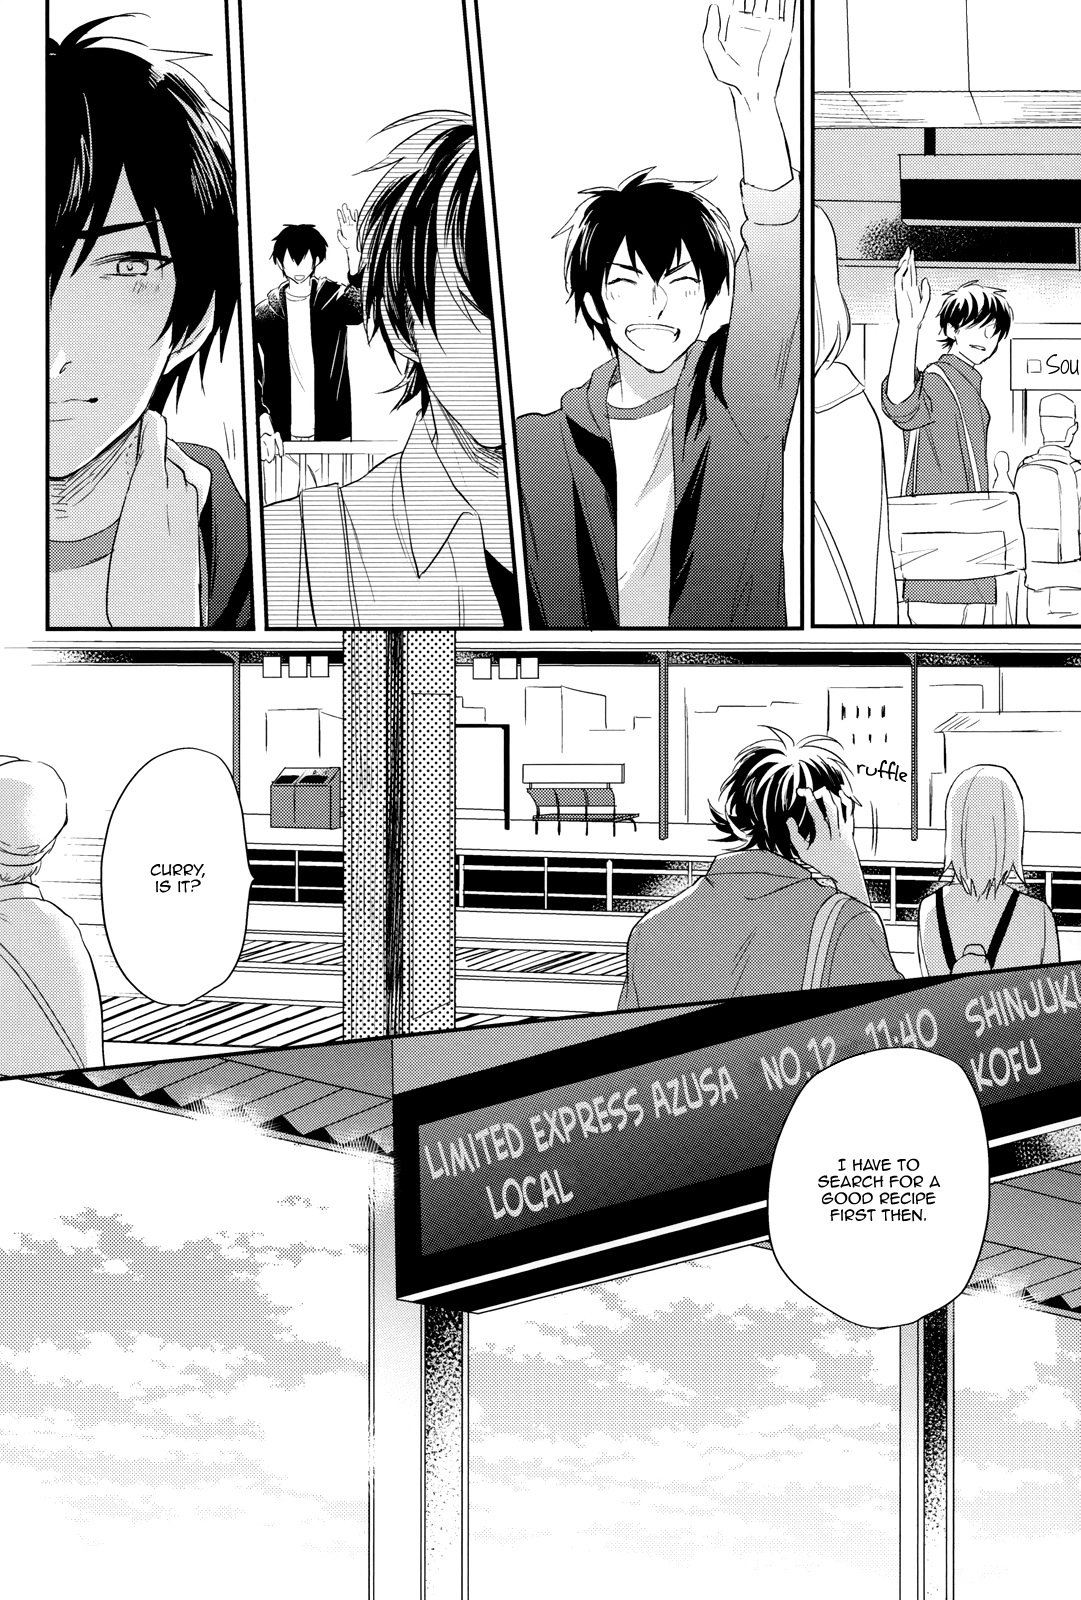 Daiya no A dj - Vintage chapter 1 page 35